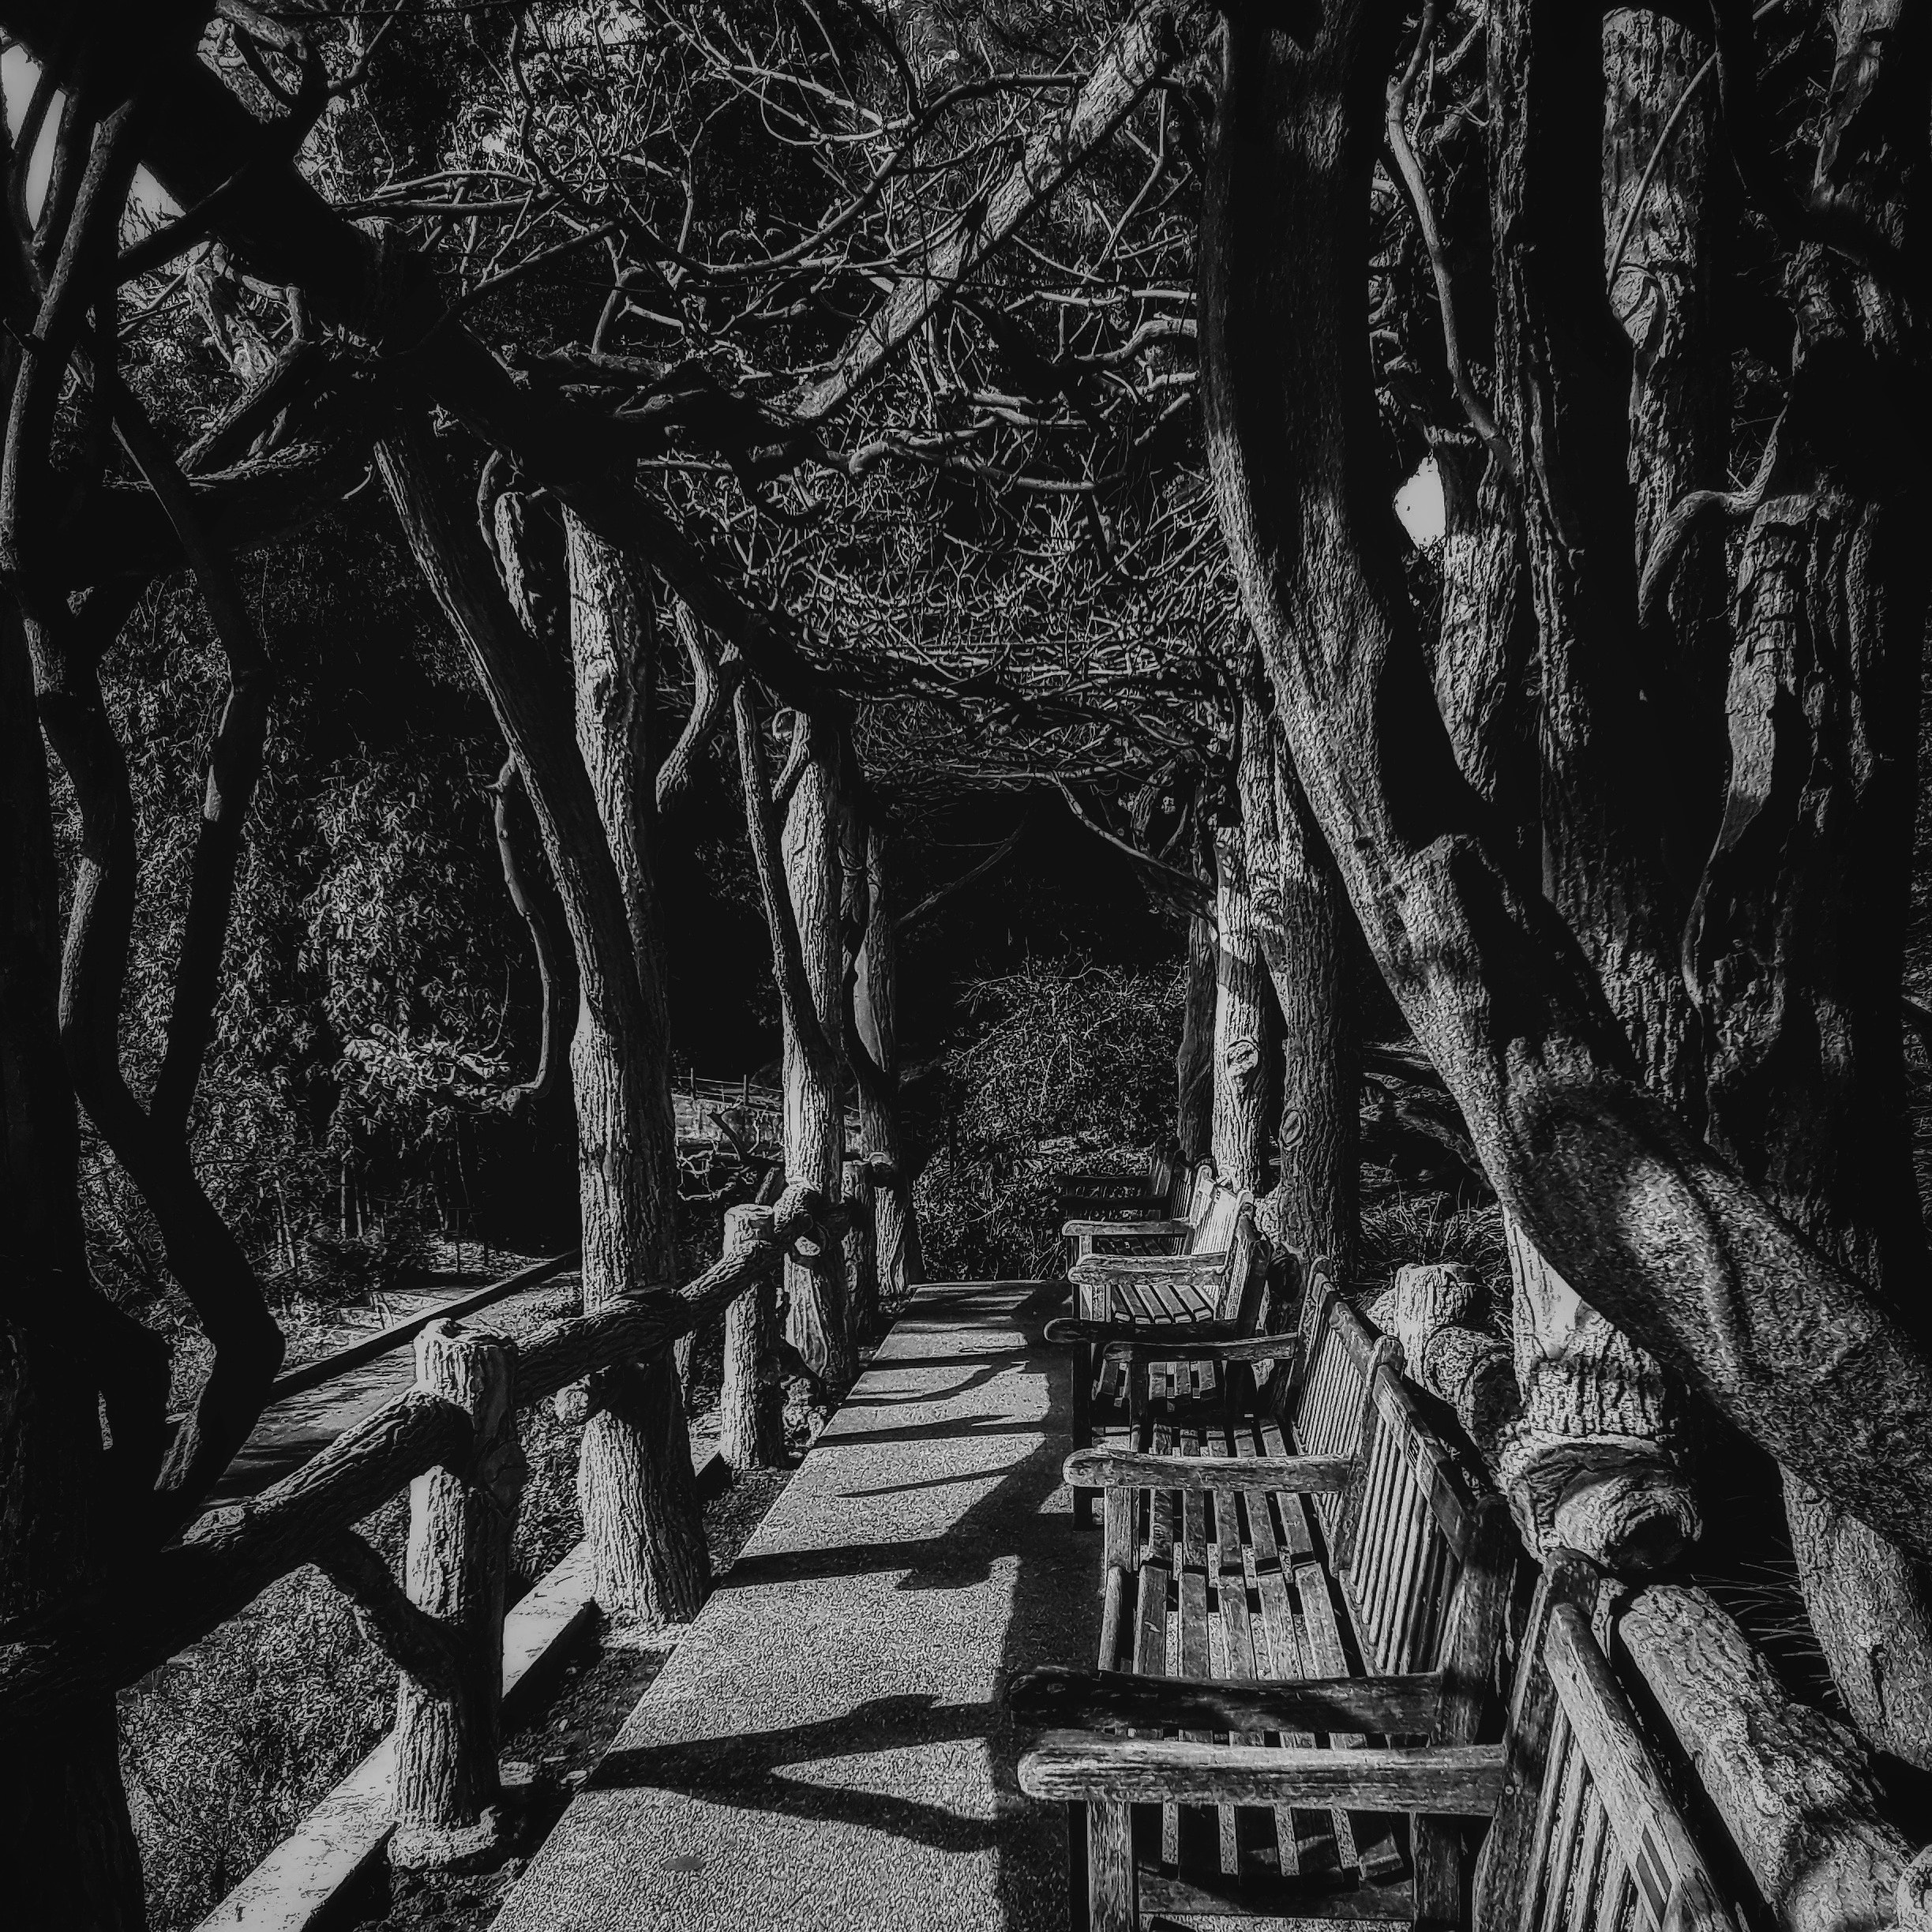 black and white photograph of rustic park benches